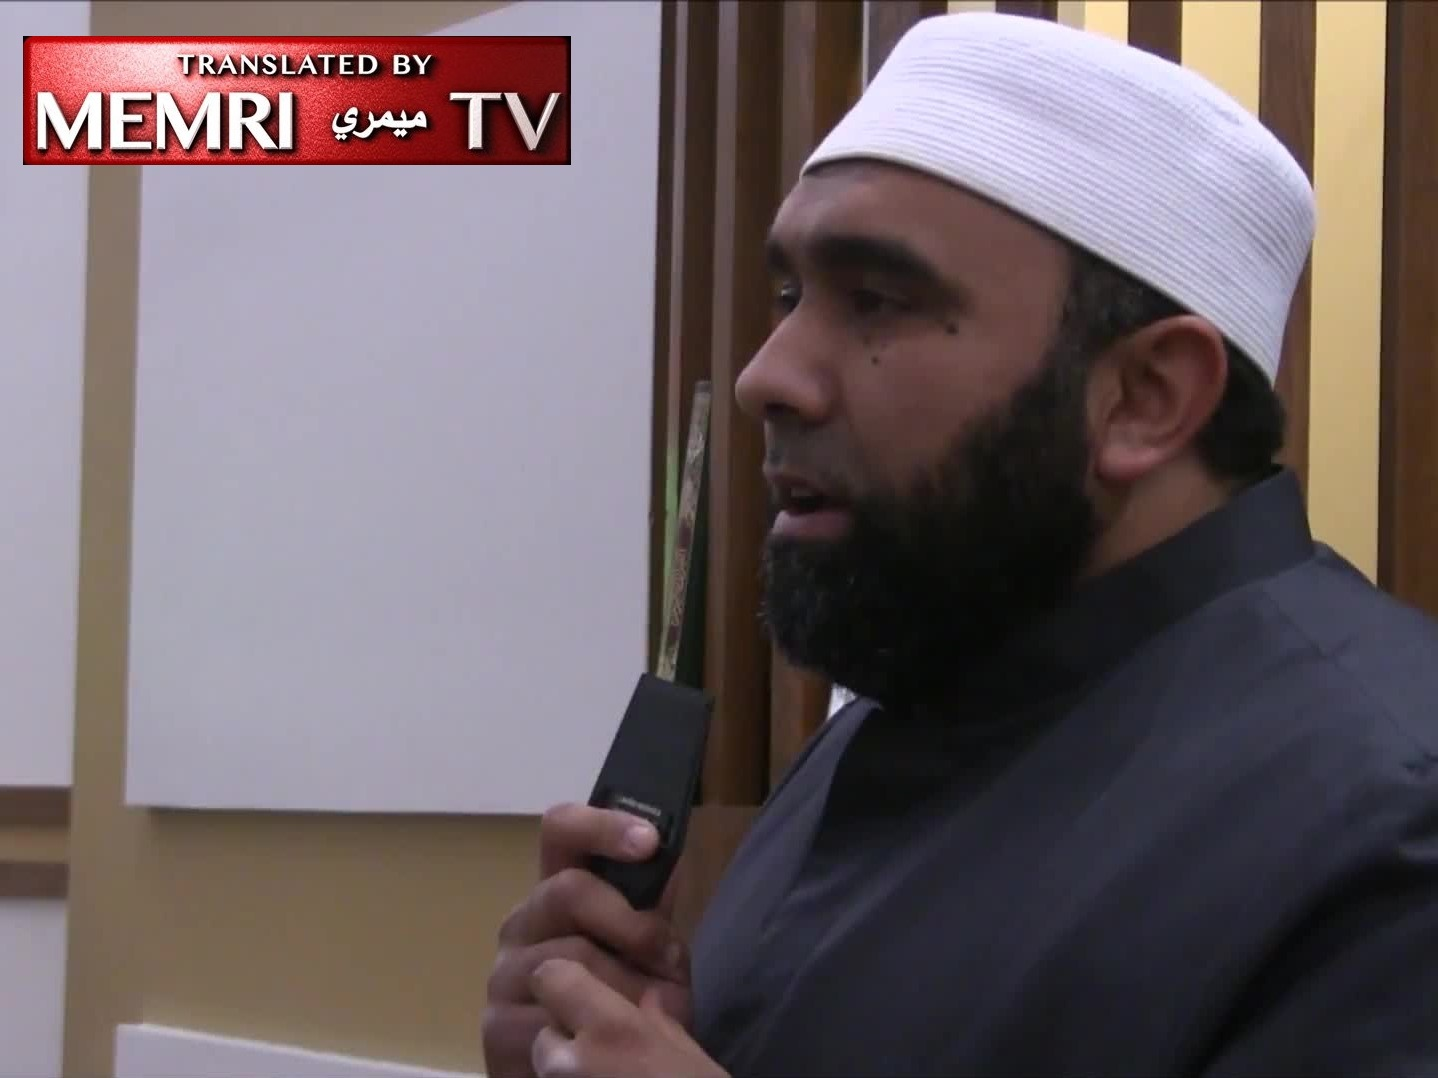 Cleveland Imam Islam Hassan: The Prophet Muhammad Was Not Marrying a Child When He Married 9-Year-Old 'Aisha